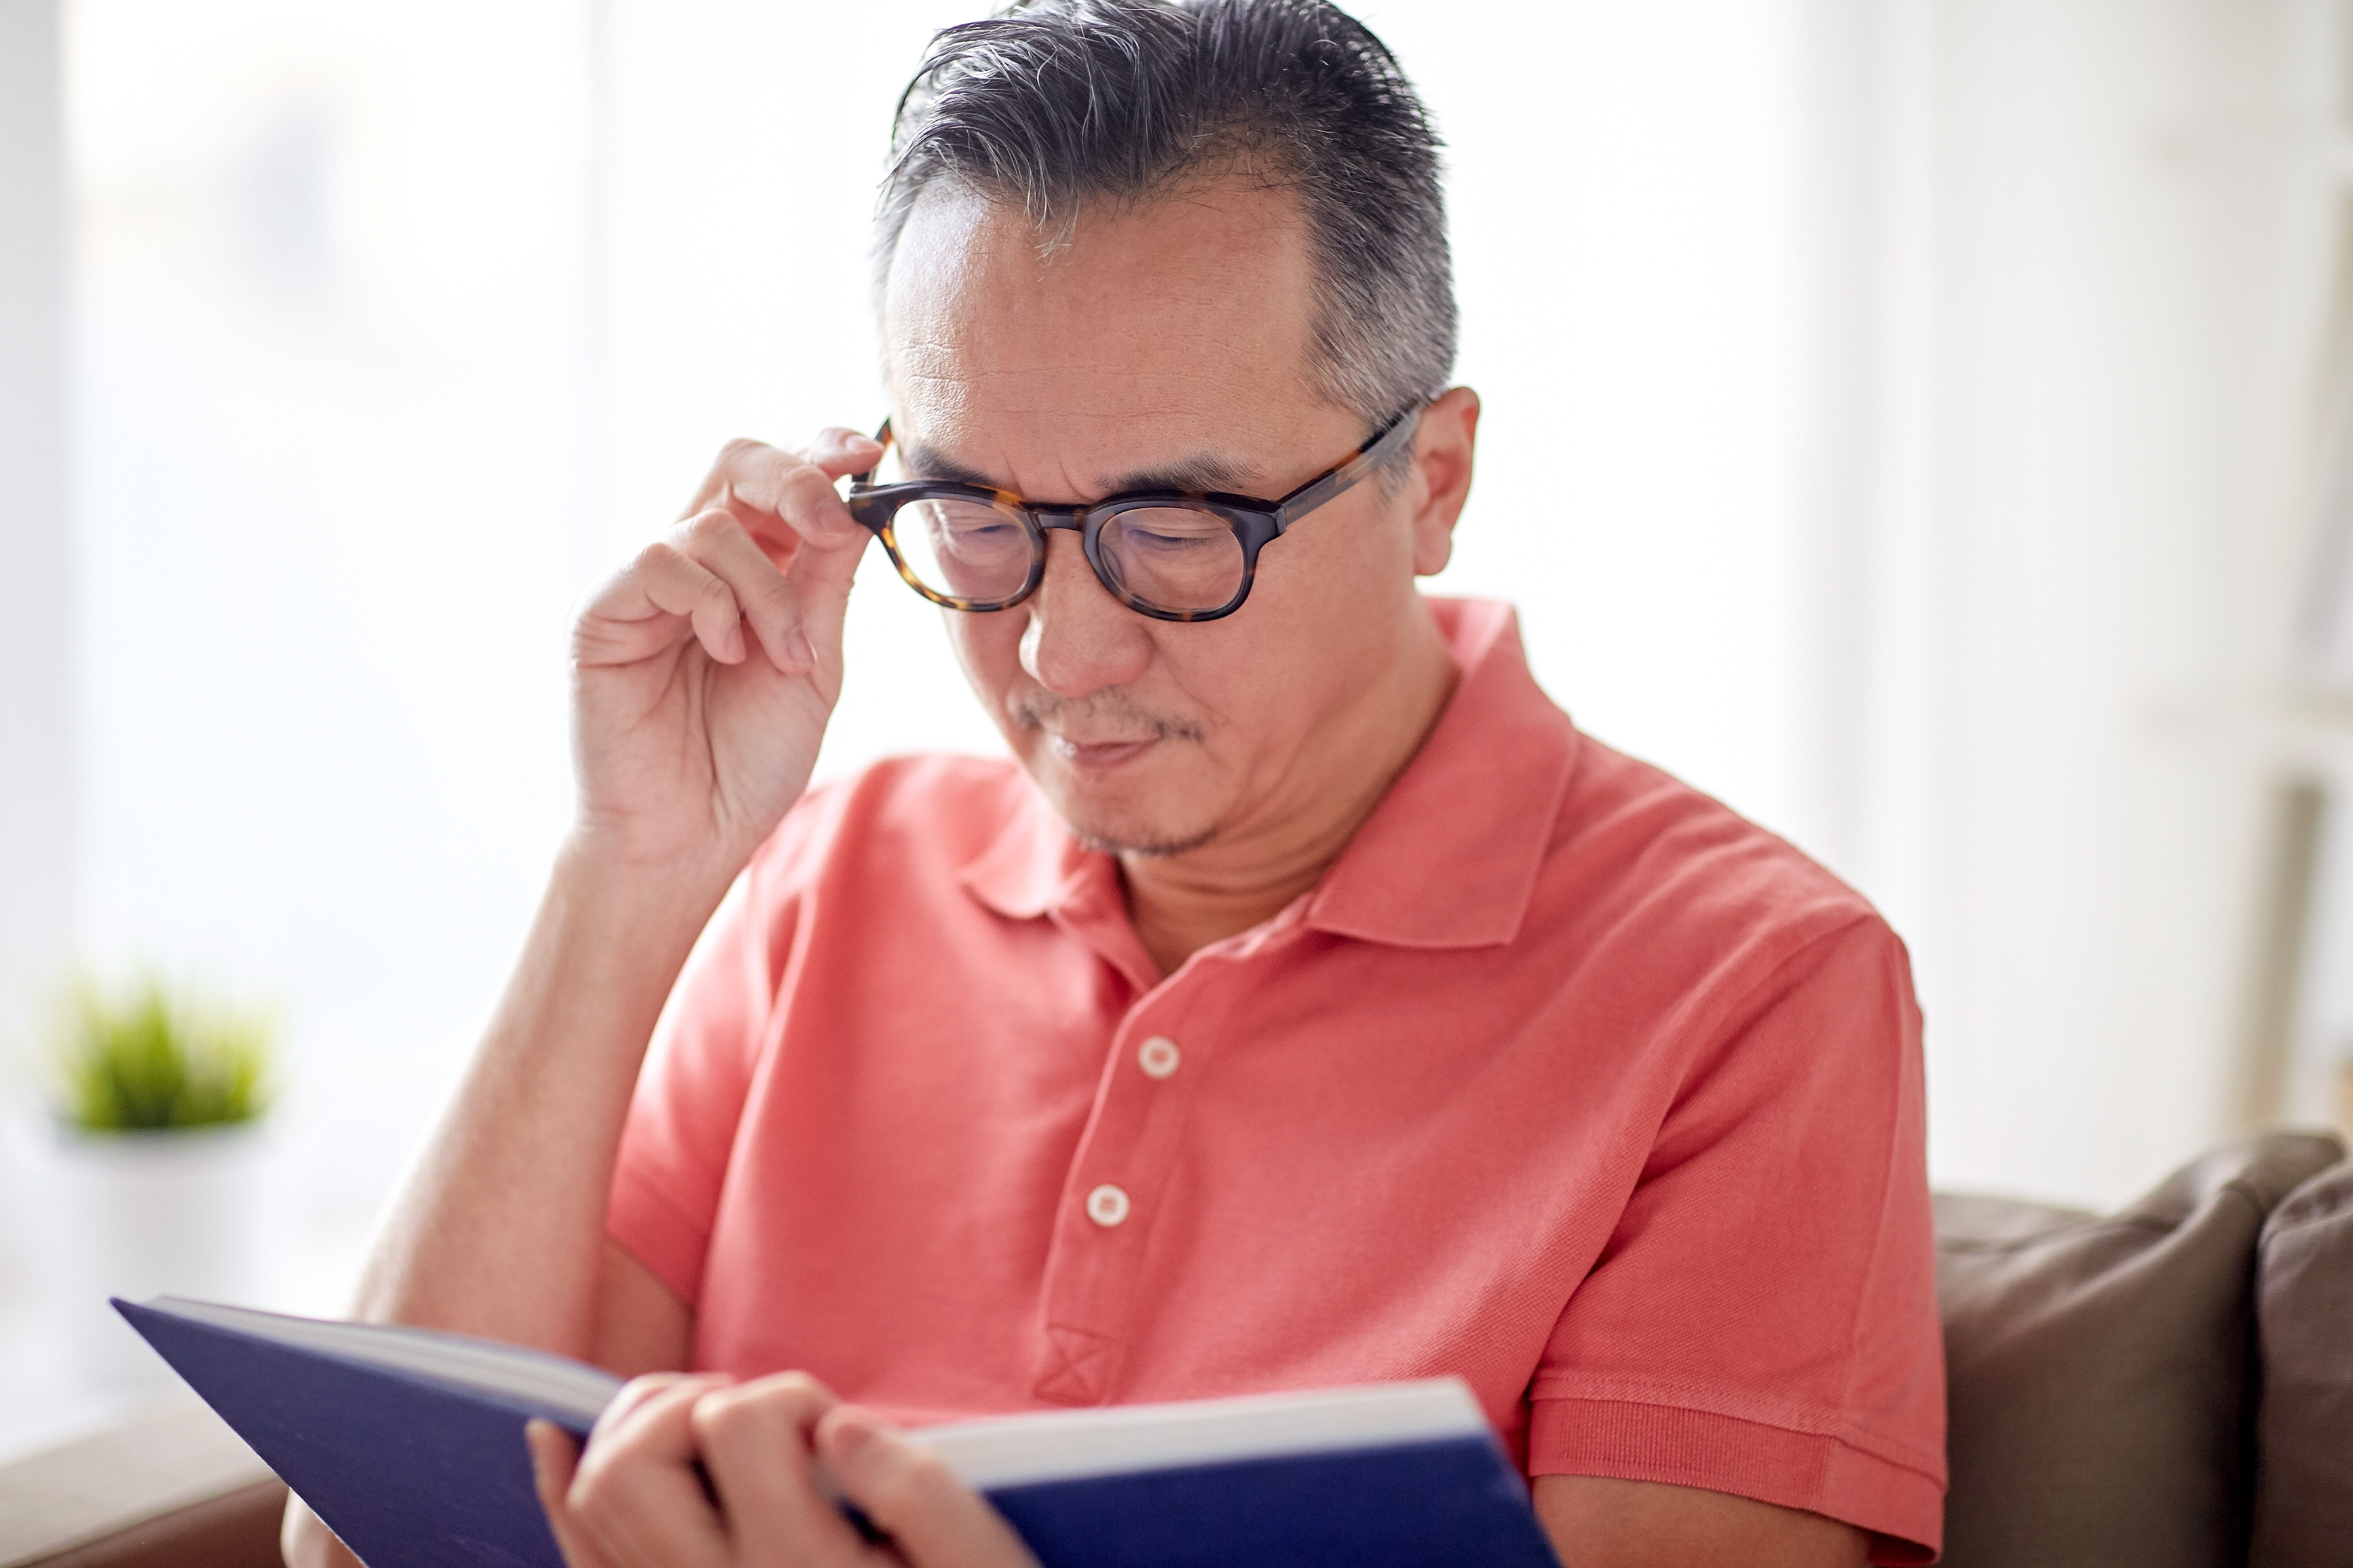 man-in-glasses-reading-book-at-home-PARV7F7